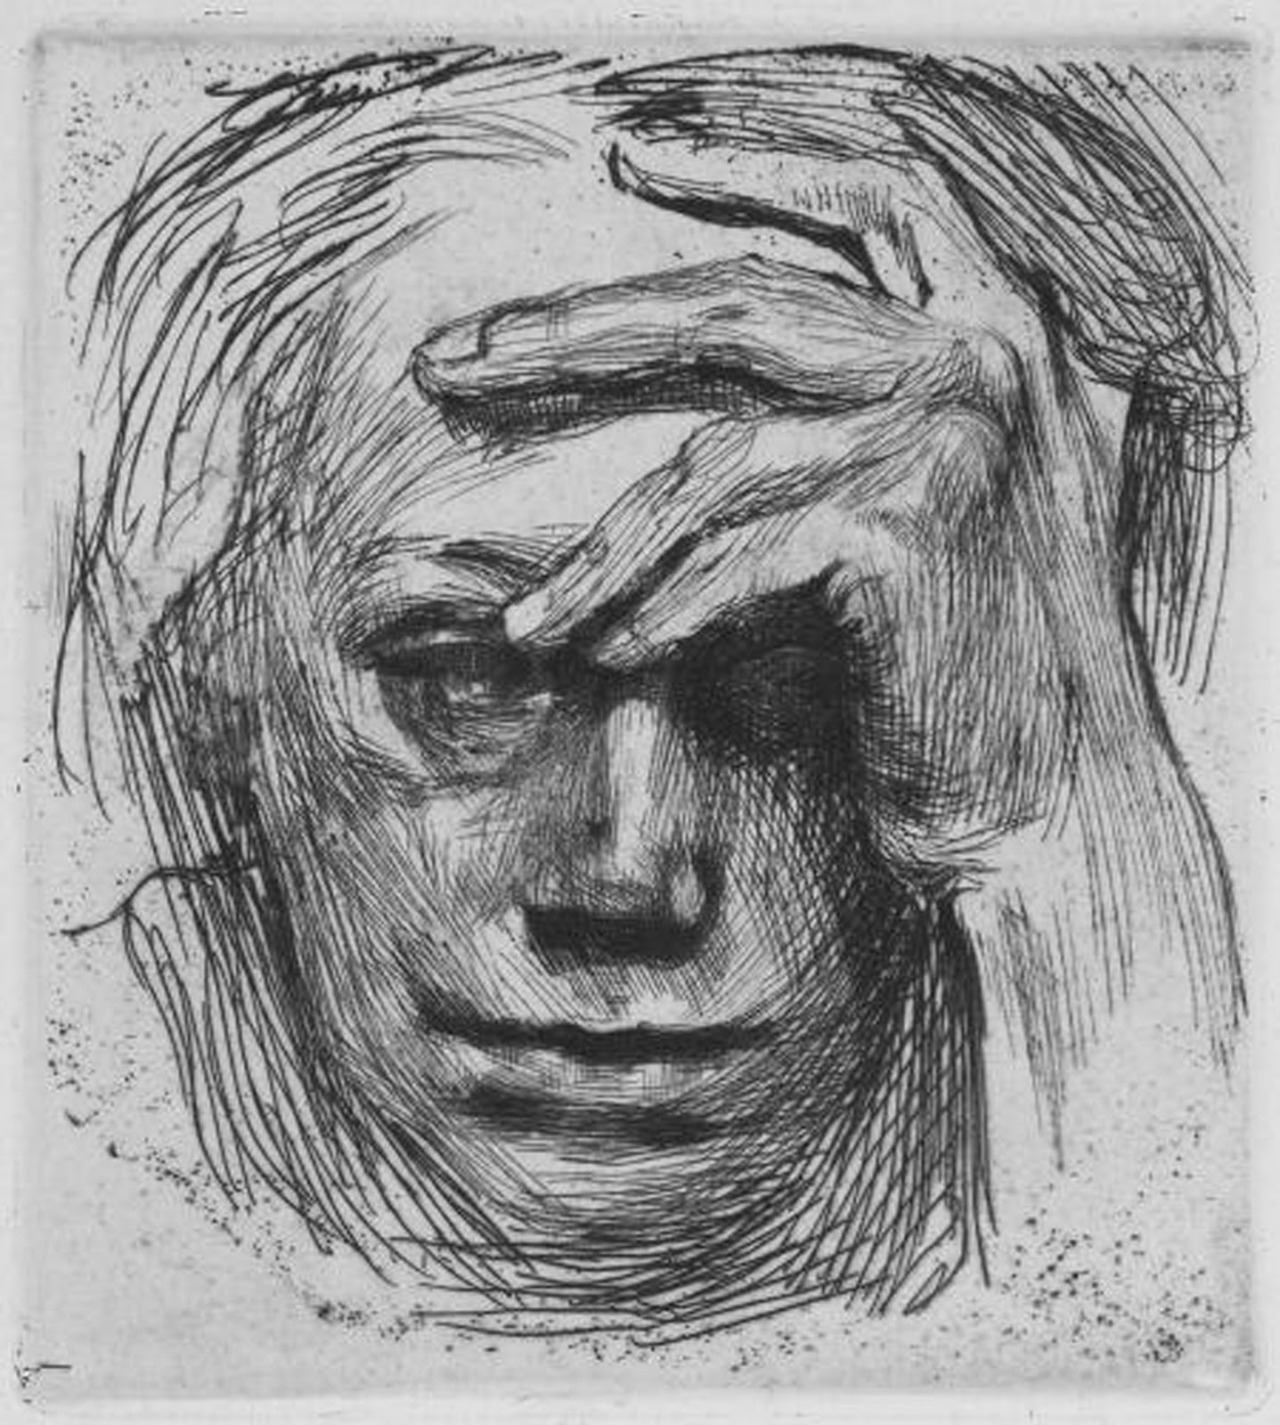 Kathe Kollwitz: Self- Portrait with Hand on Brow (1910) Etching